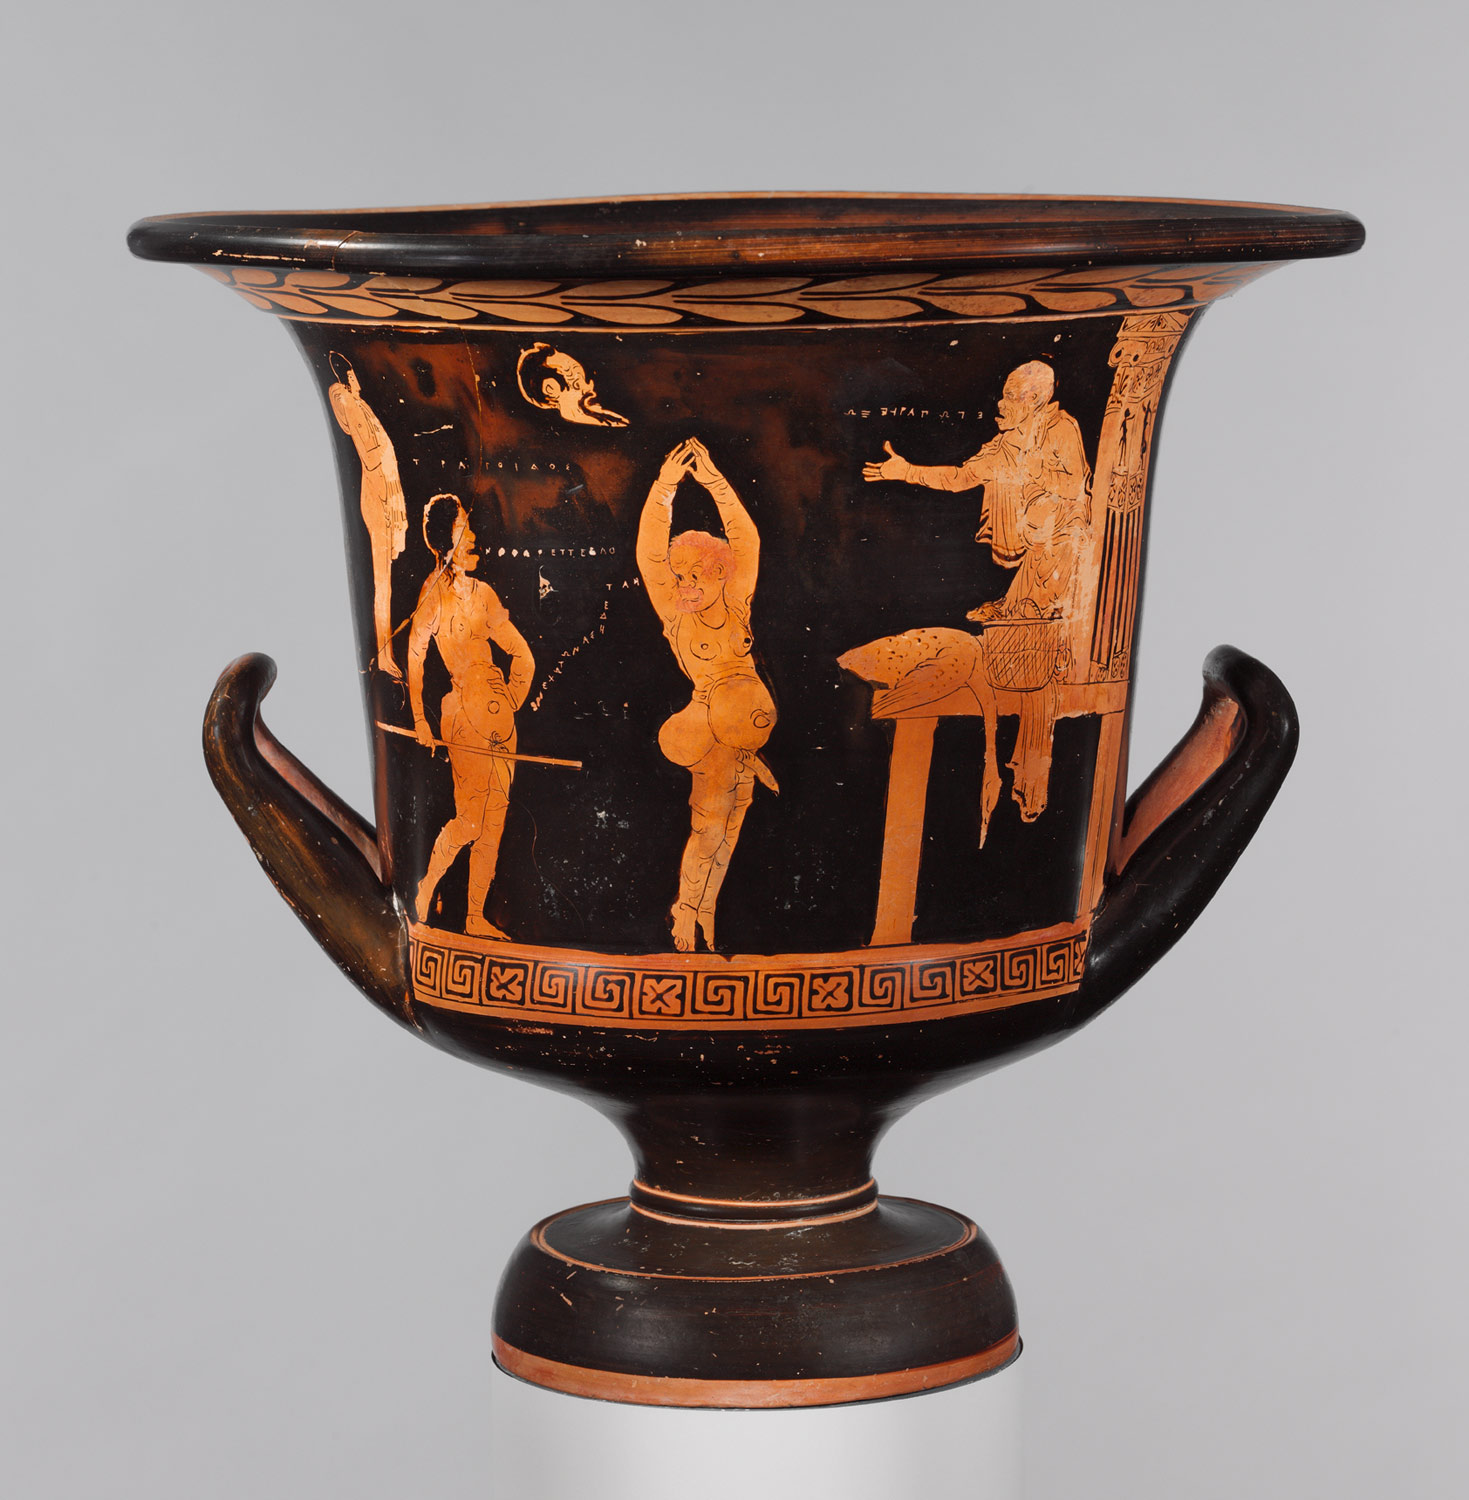 ancient greek colonization and trade and their influence on greek   terracotta calyx krater mixing bowl